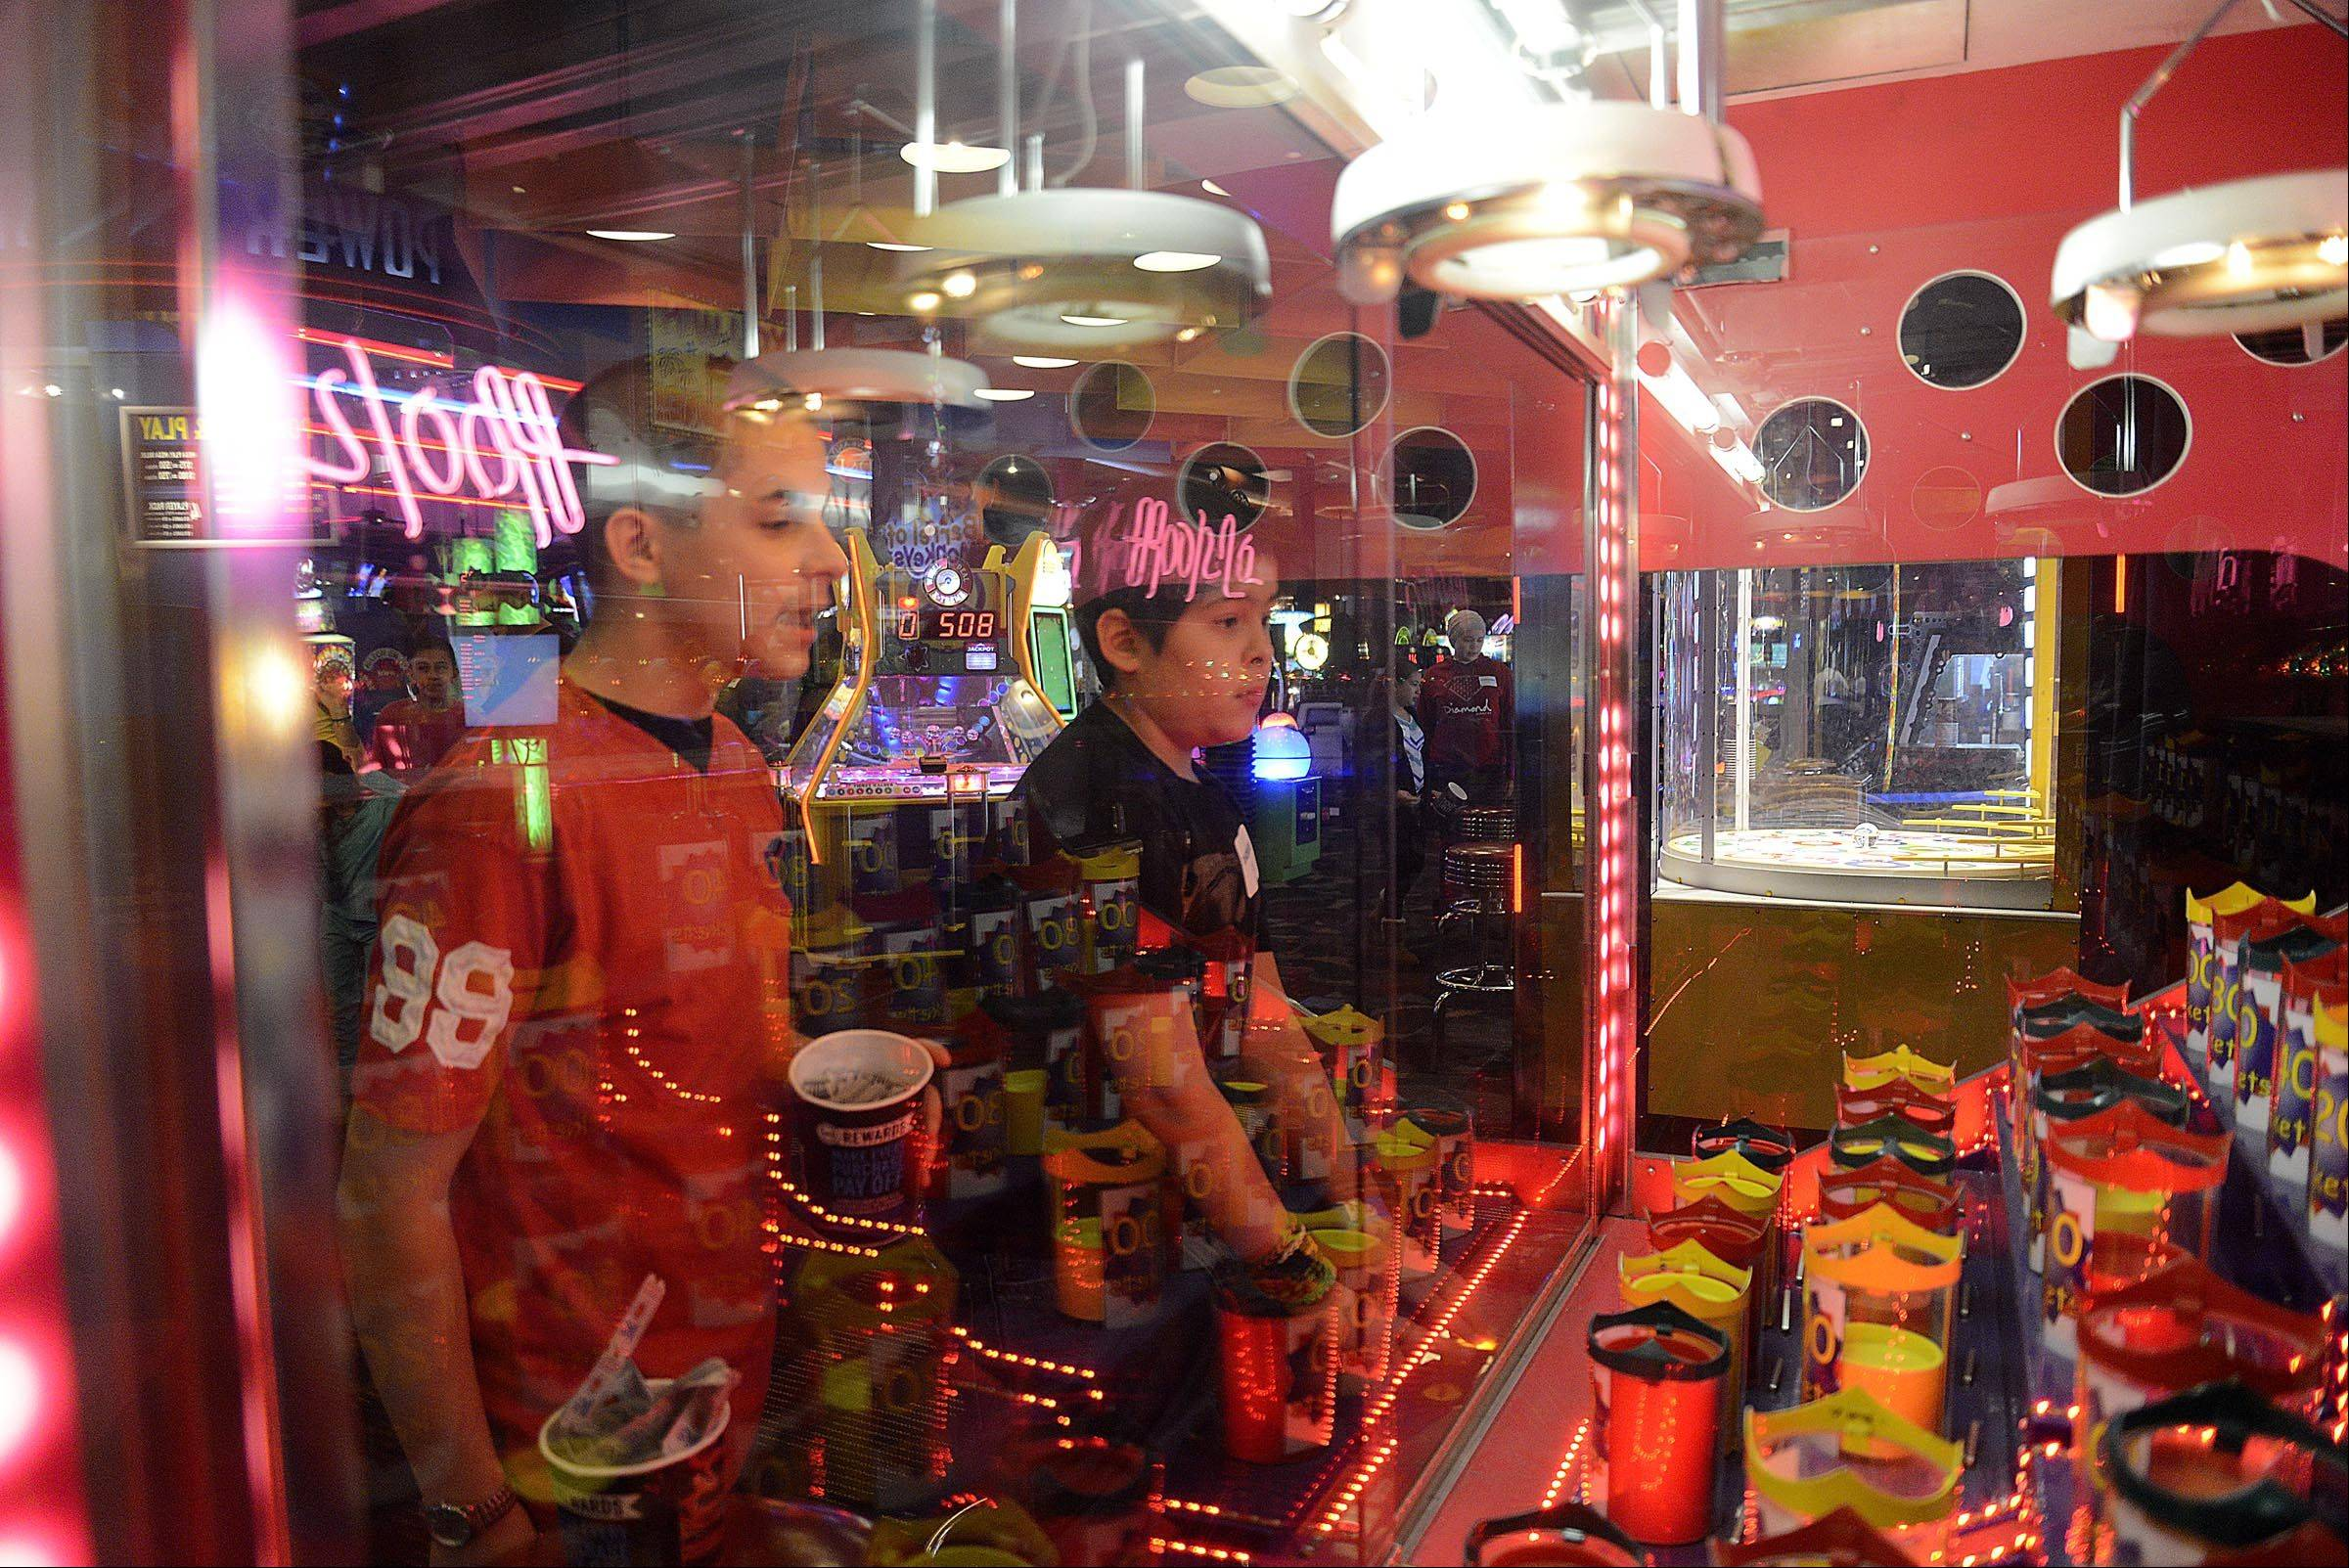 Zachary Aceves, 10, right, of Chicago, plays a game as his older brother Alex, 16, coaches him Sunday at Dave and Buster's in Addison. They were there for the Leukemia Research Foundation Kids Party. Zachary is a six-year leukemia survivor.